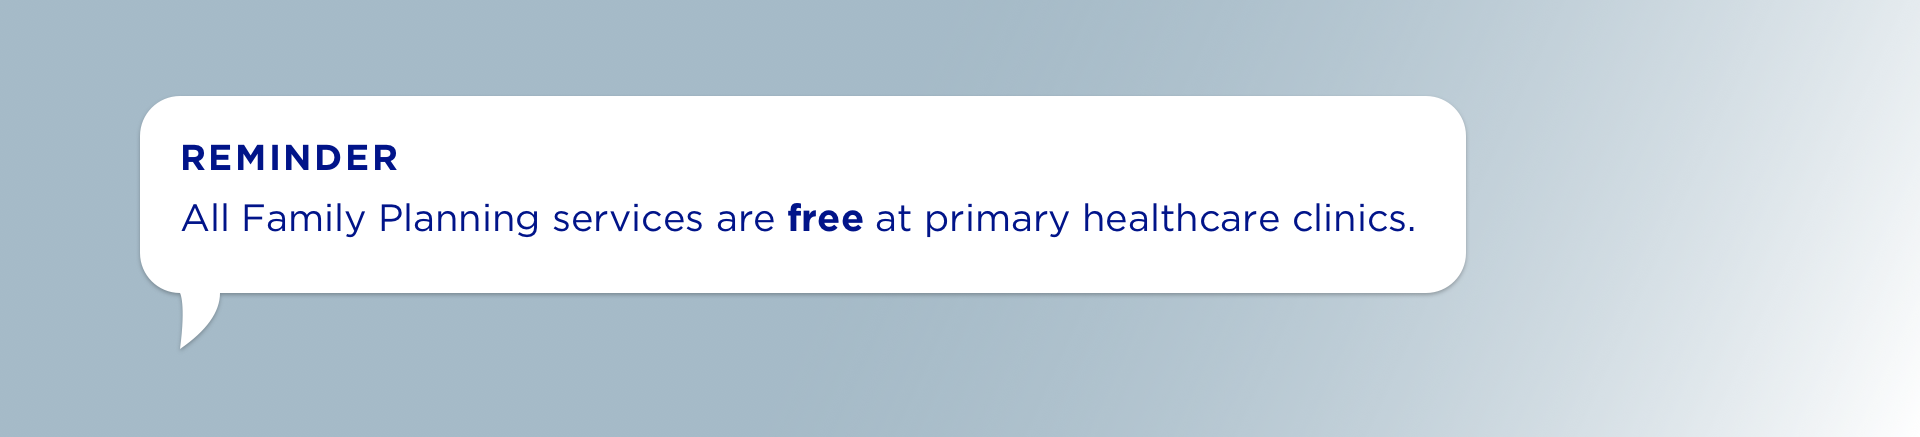 REMINDER All Family Planning services are free at primary healthcare clinics.